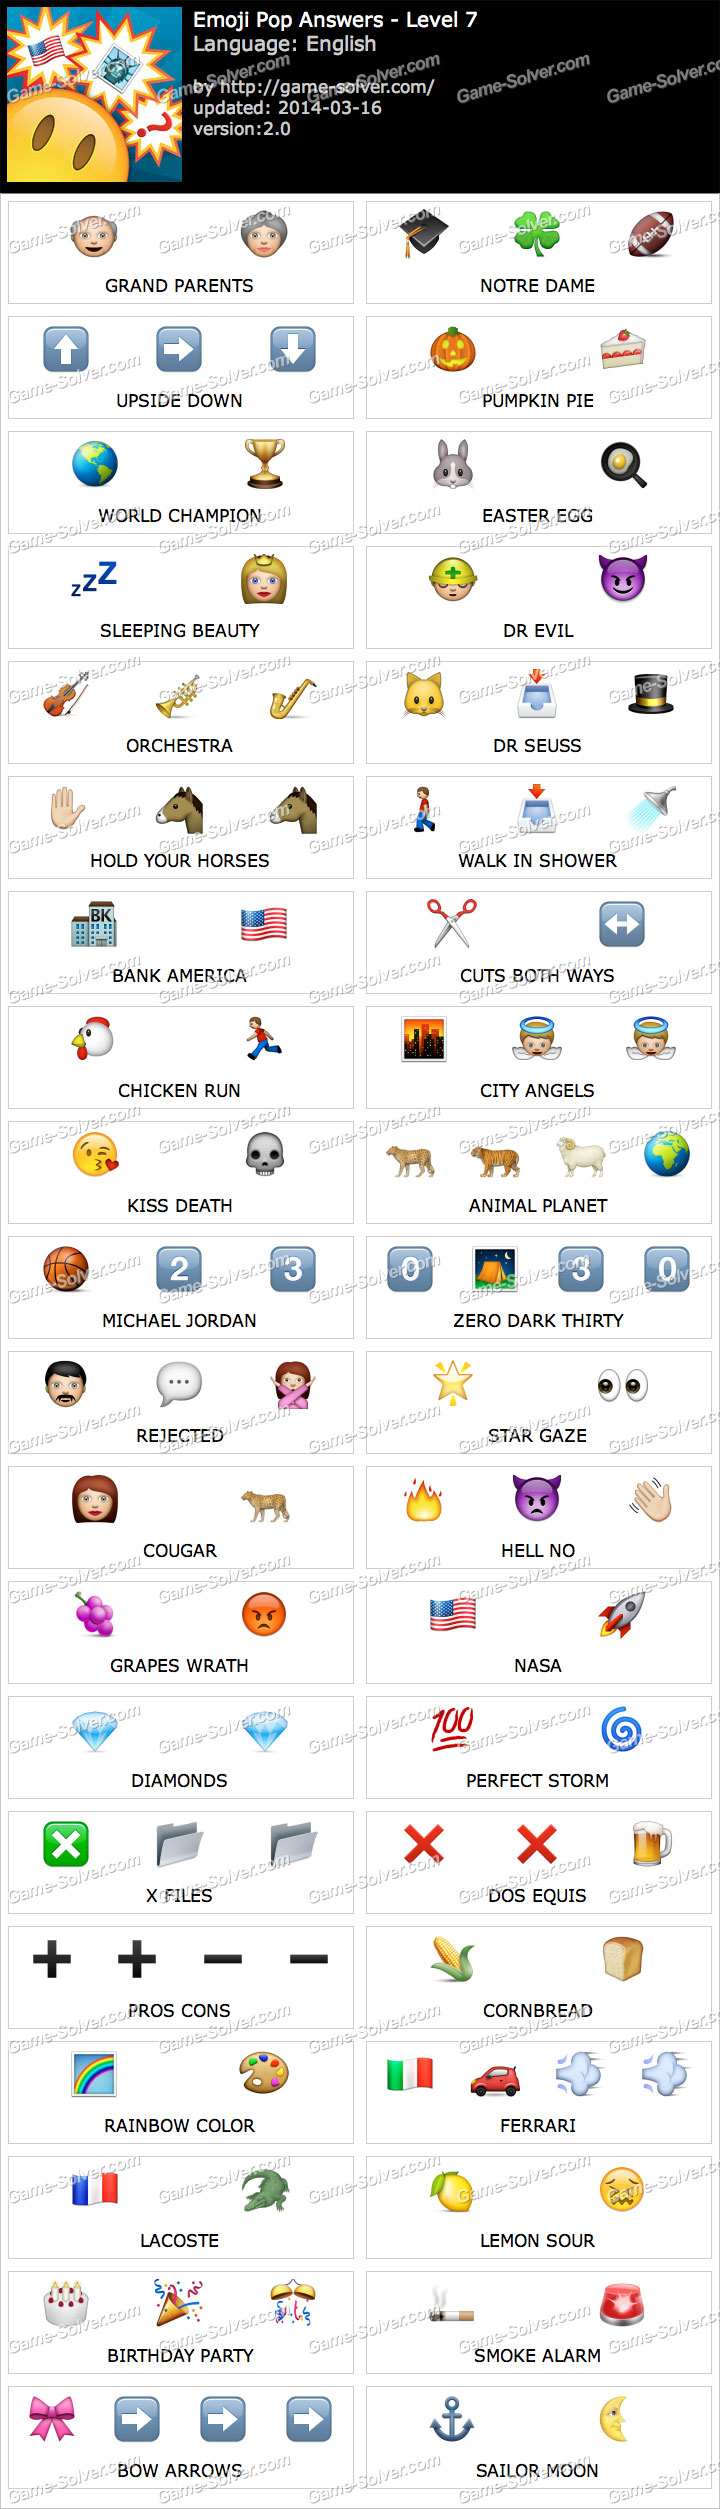 Emoji Pop Level 7